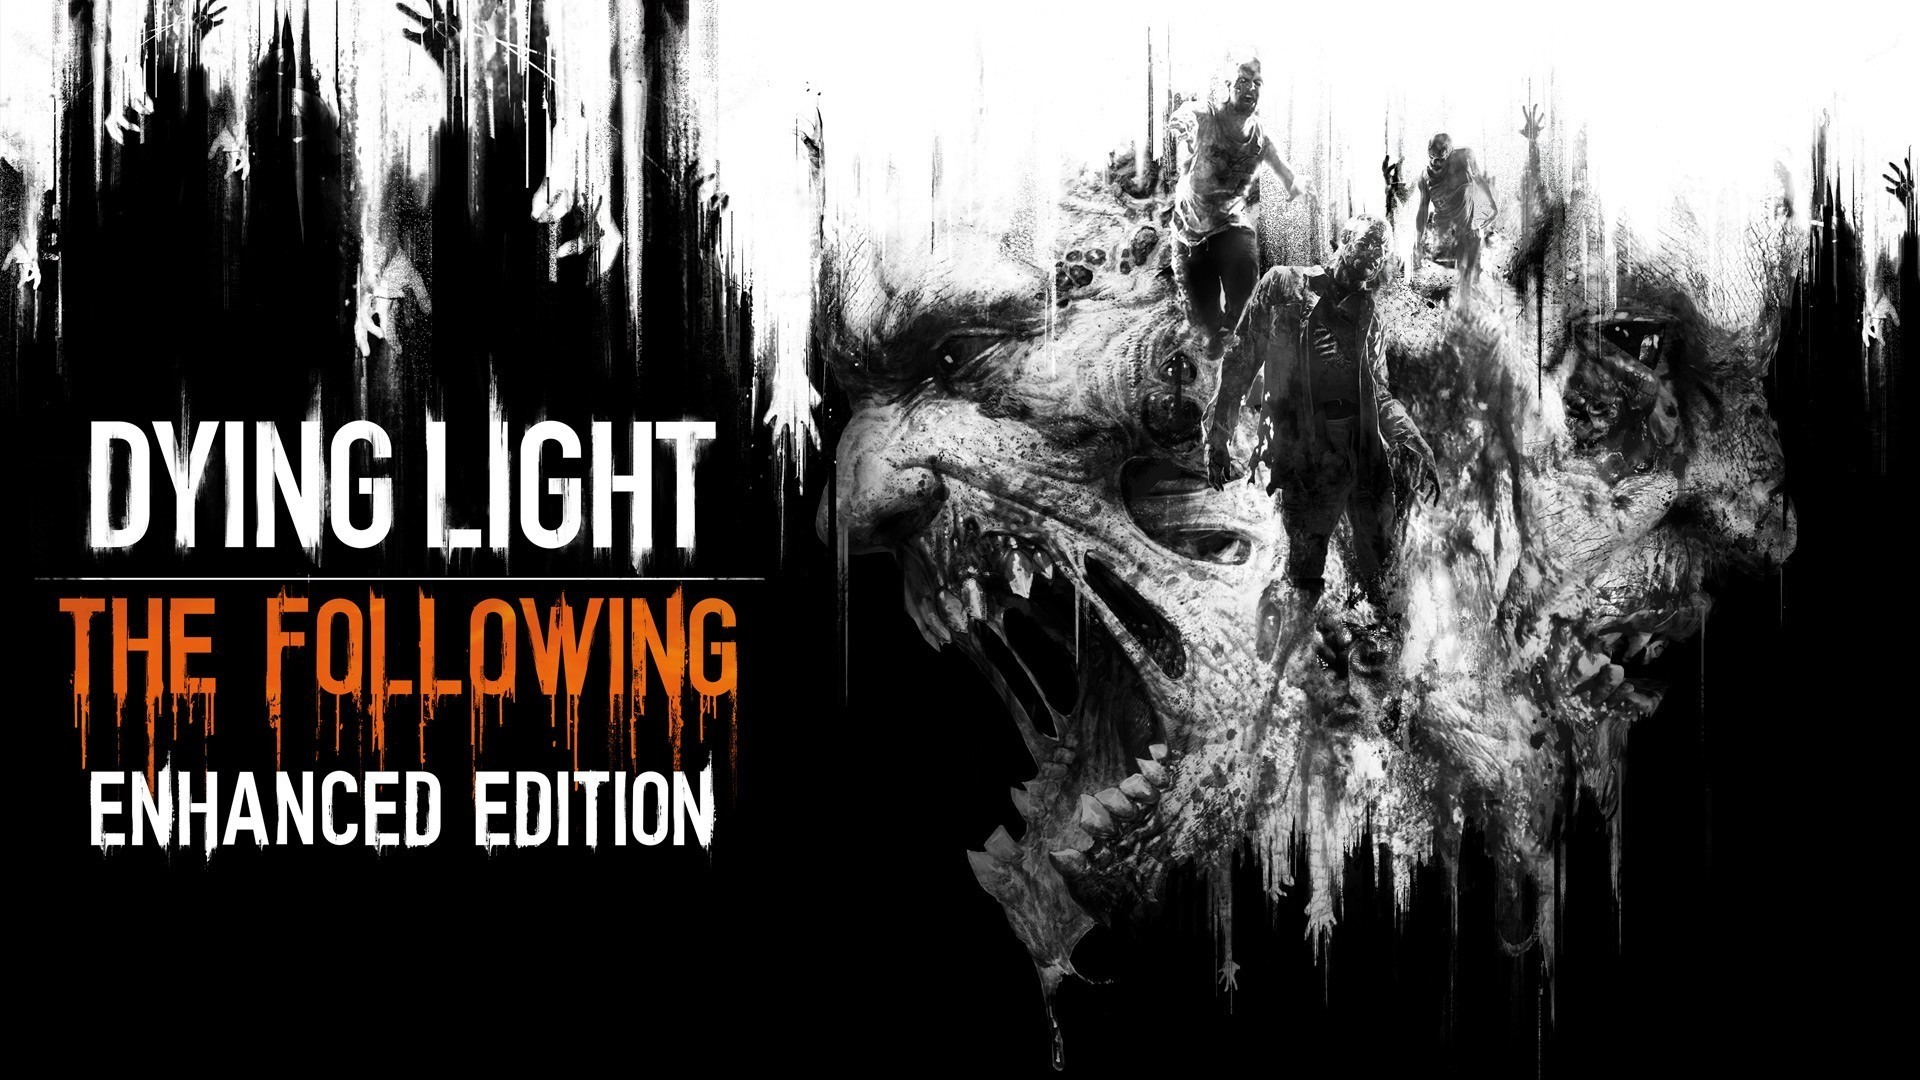 Dying Light Wallpaper 1920x1080 87 Images